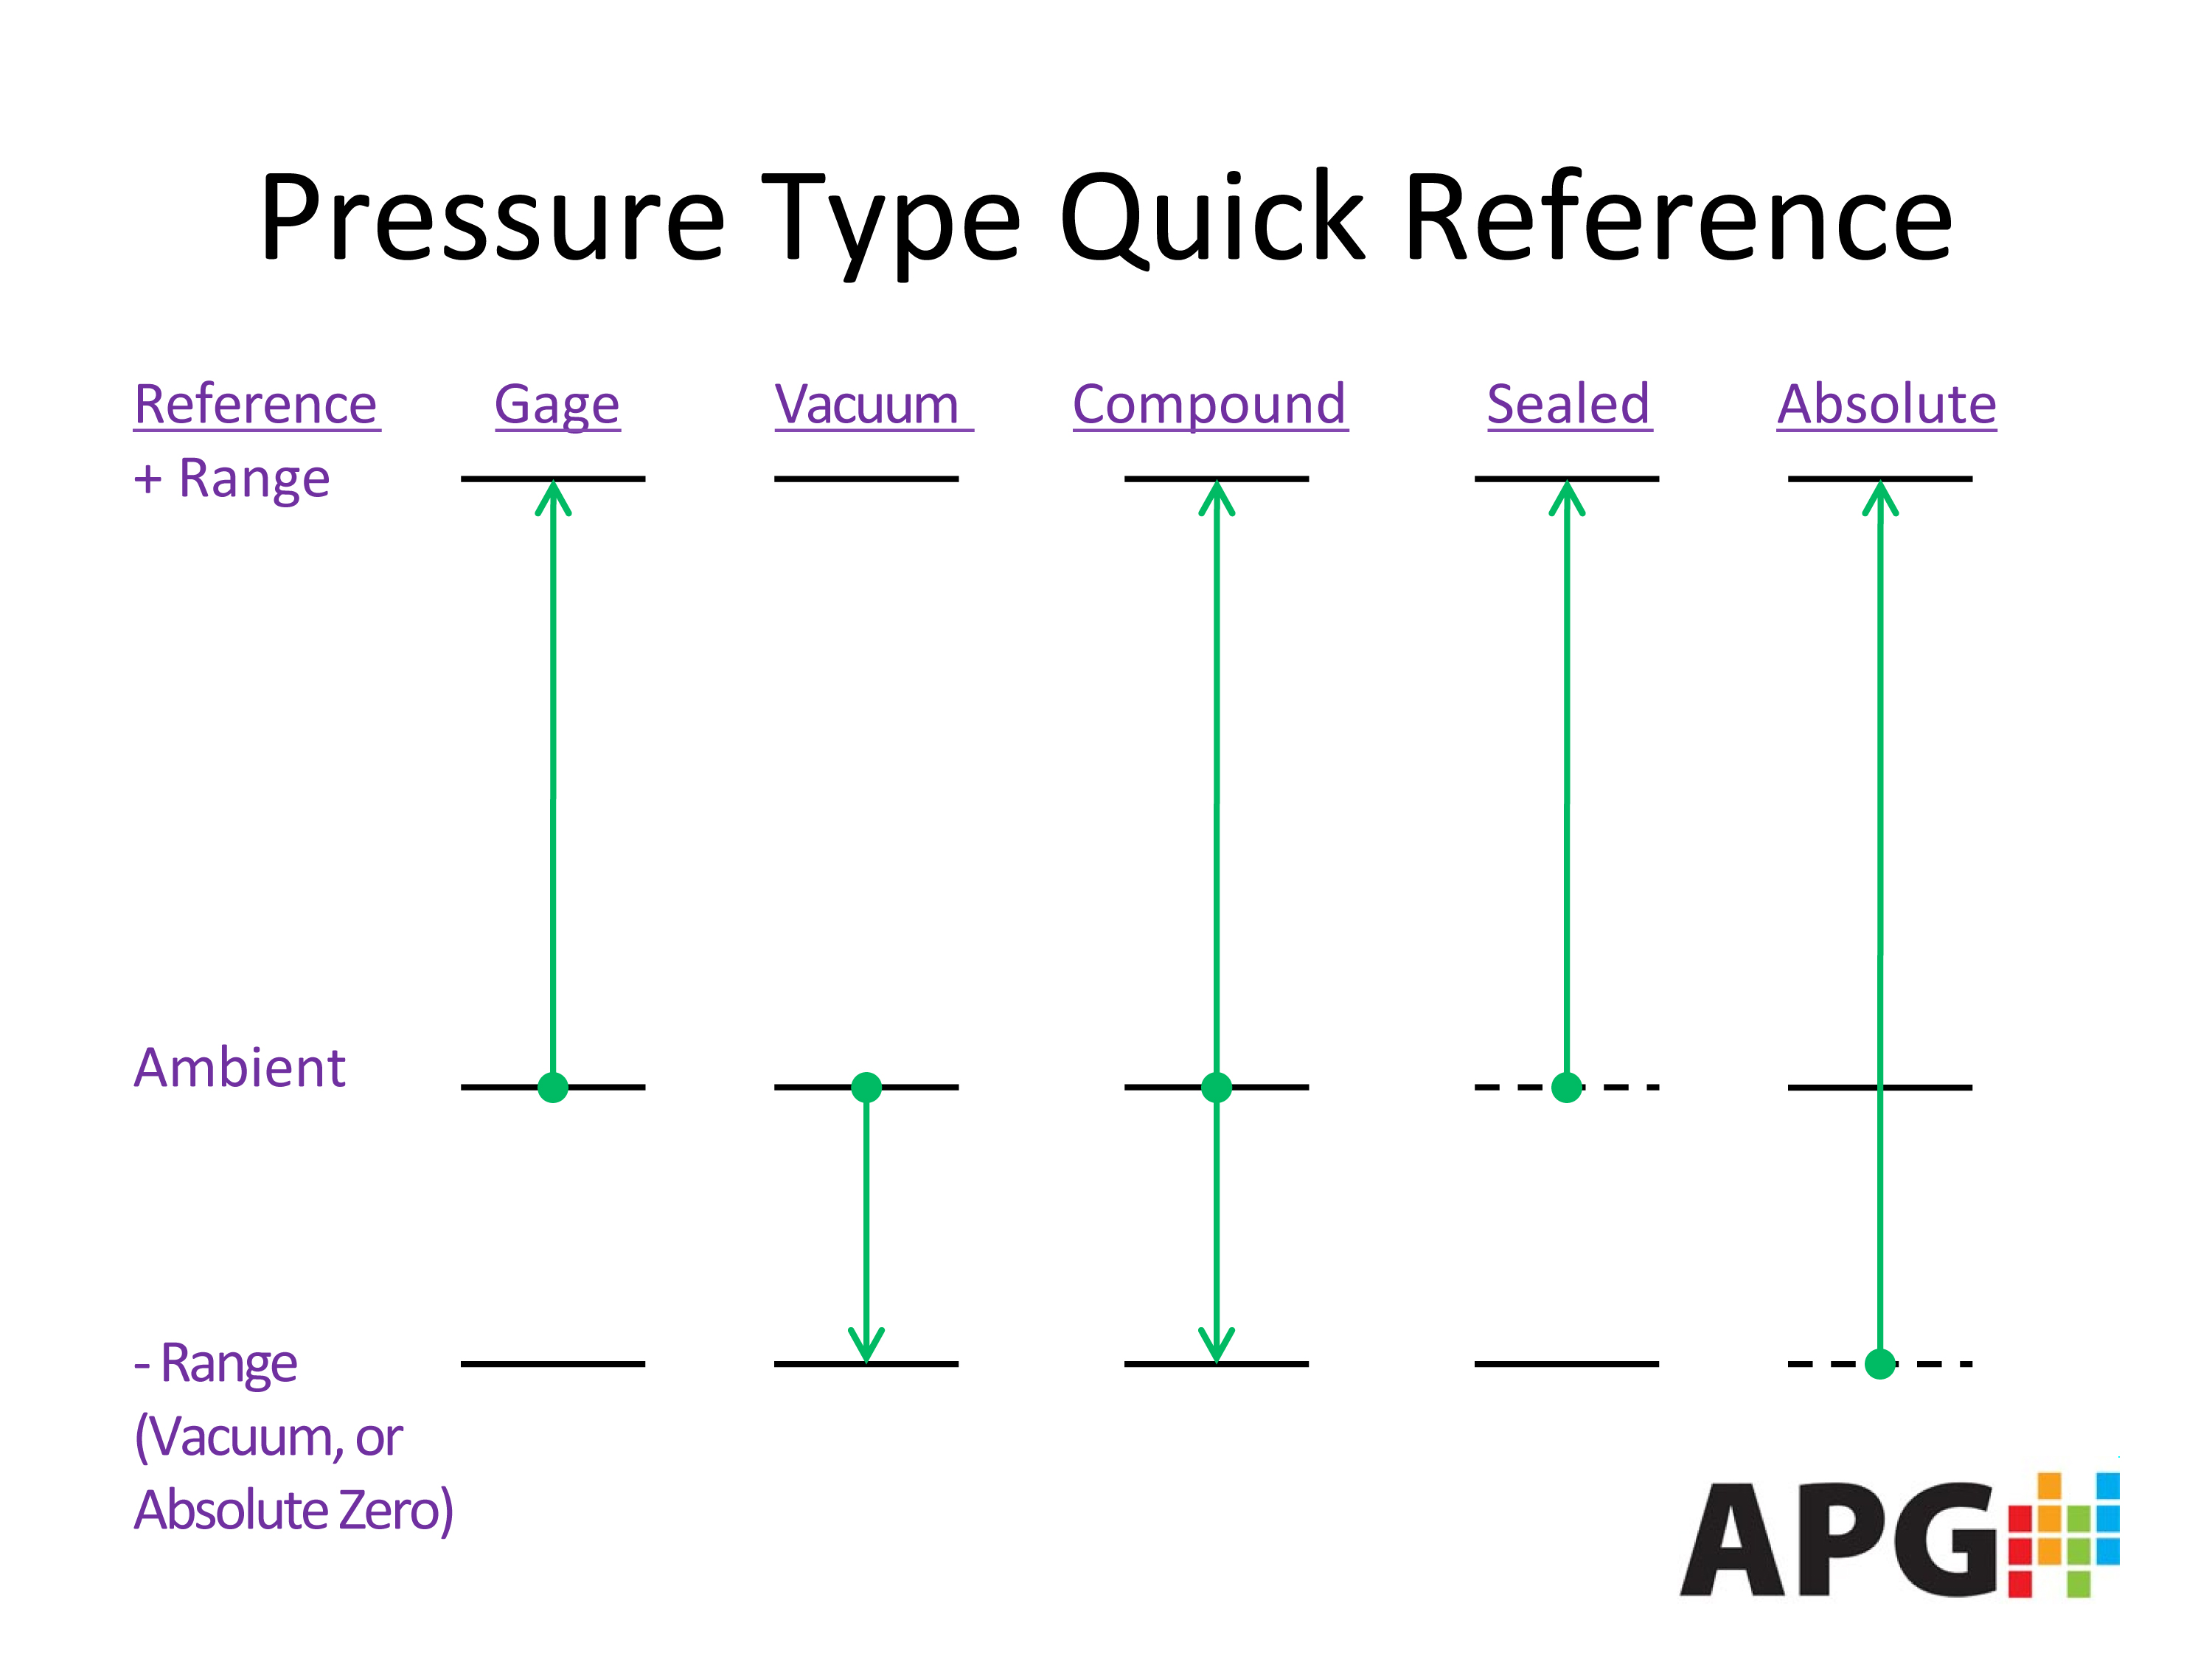 Pressure types chart image